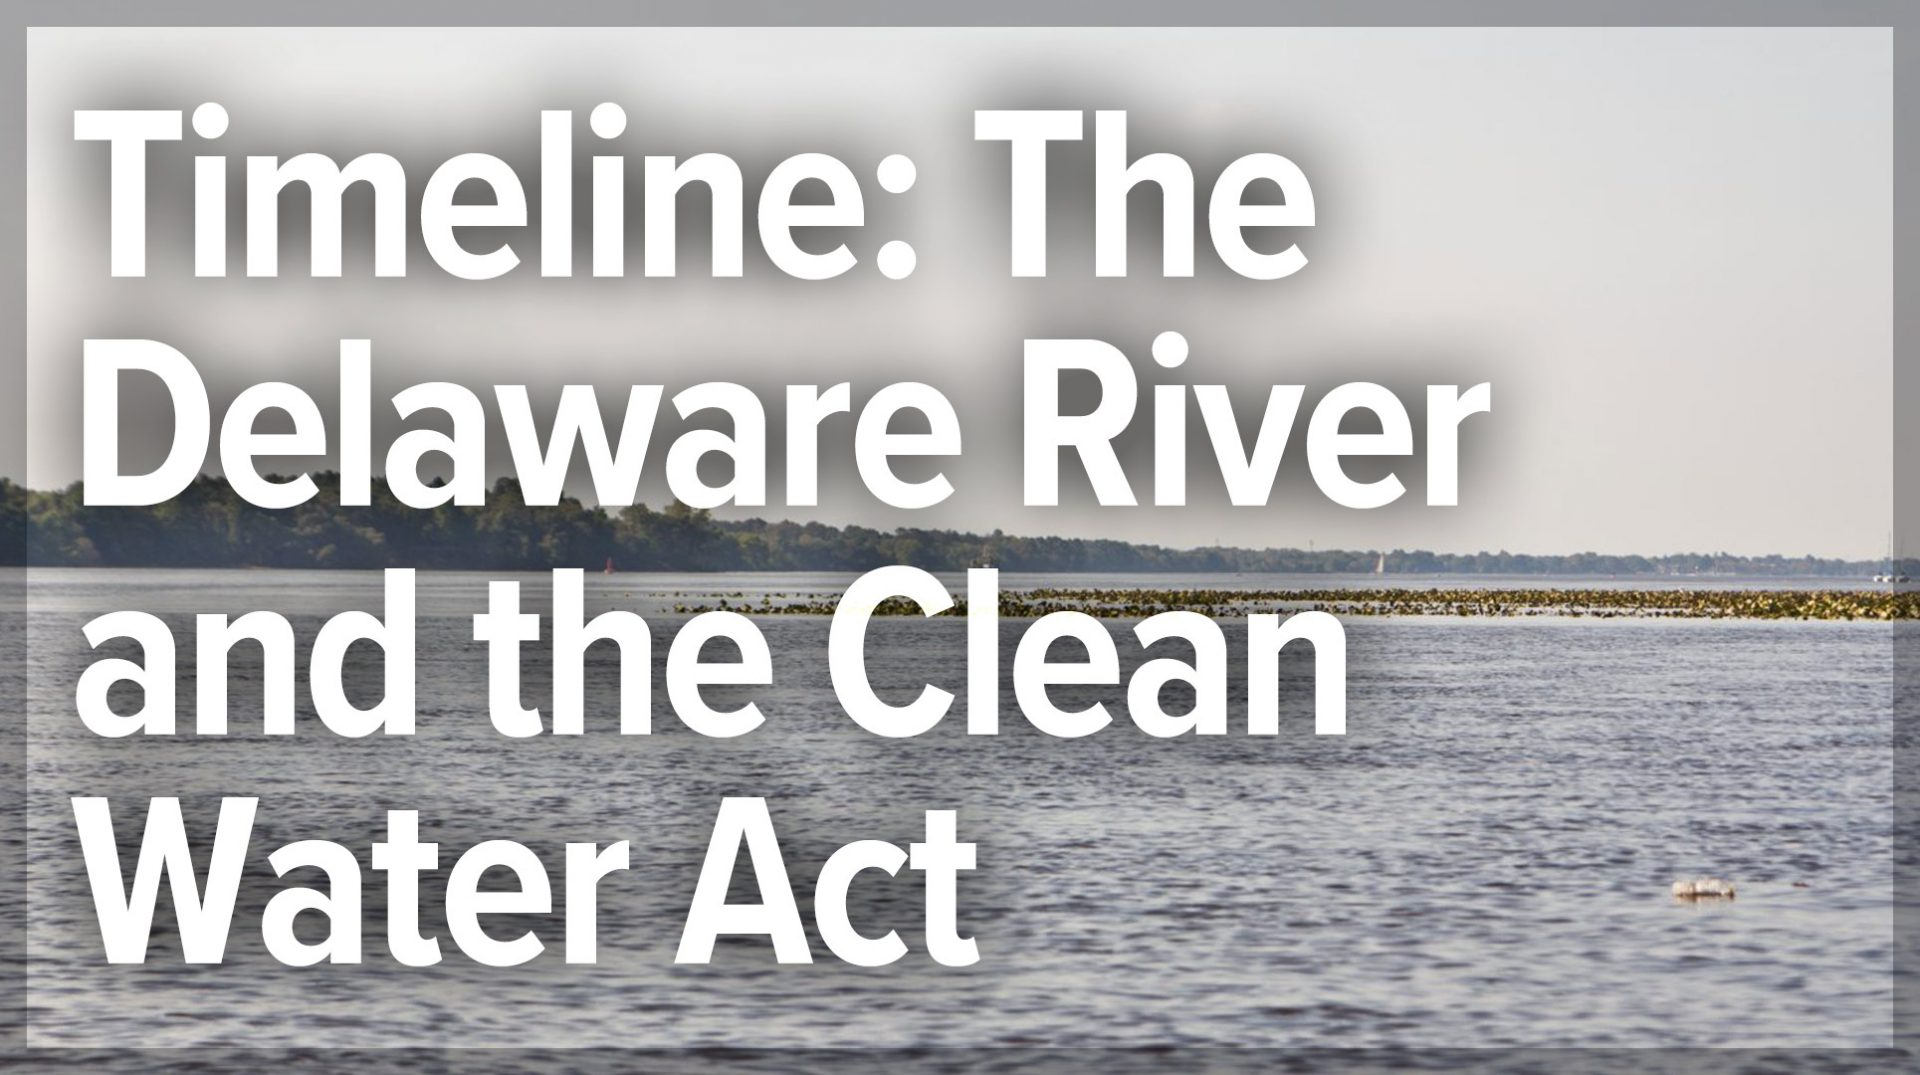 Timeline: The Delaware River and the Clean Water Act